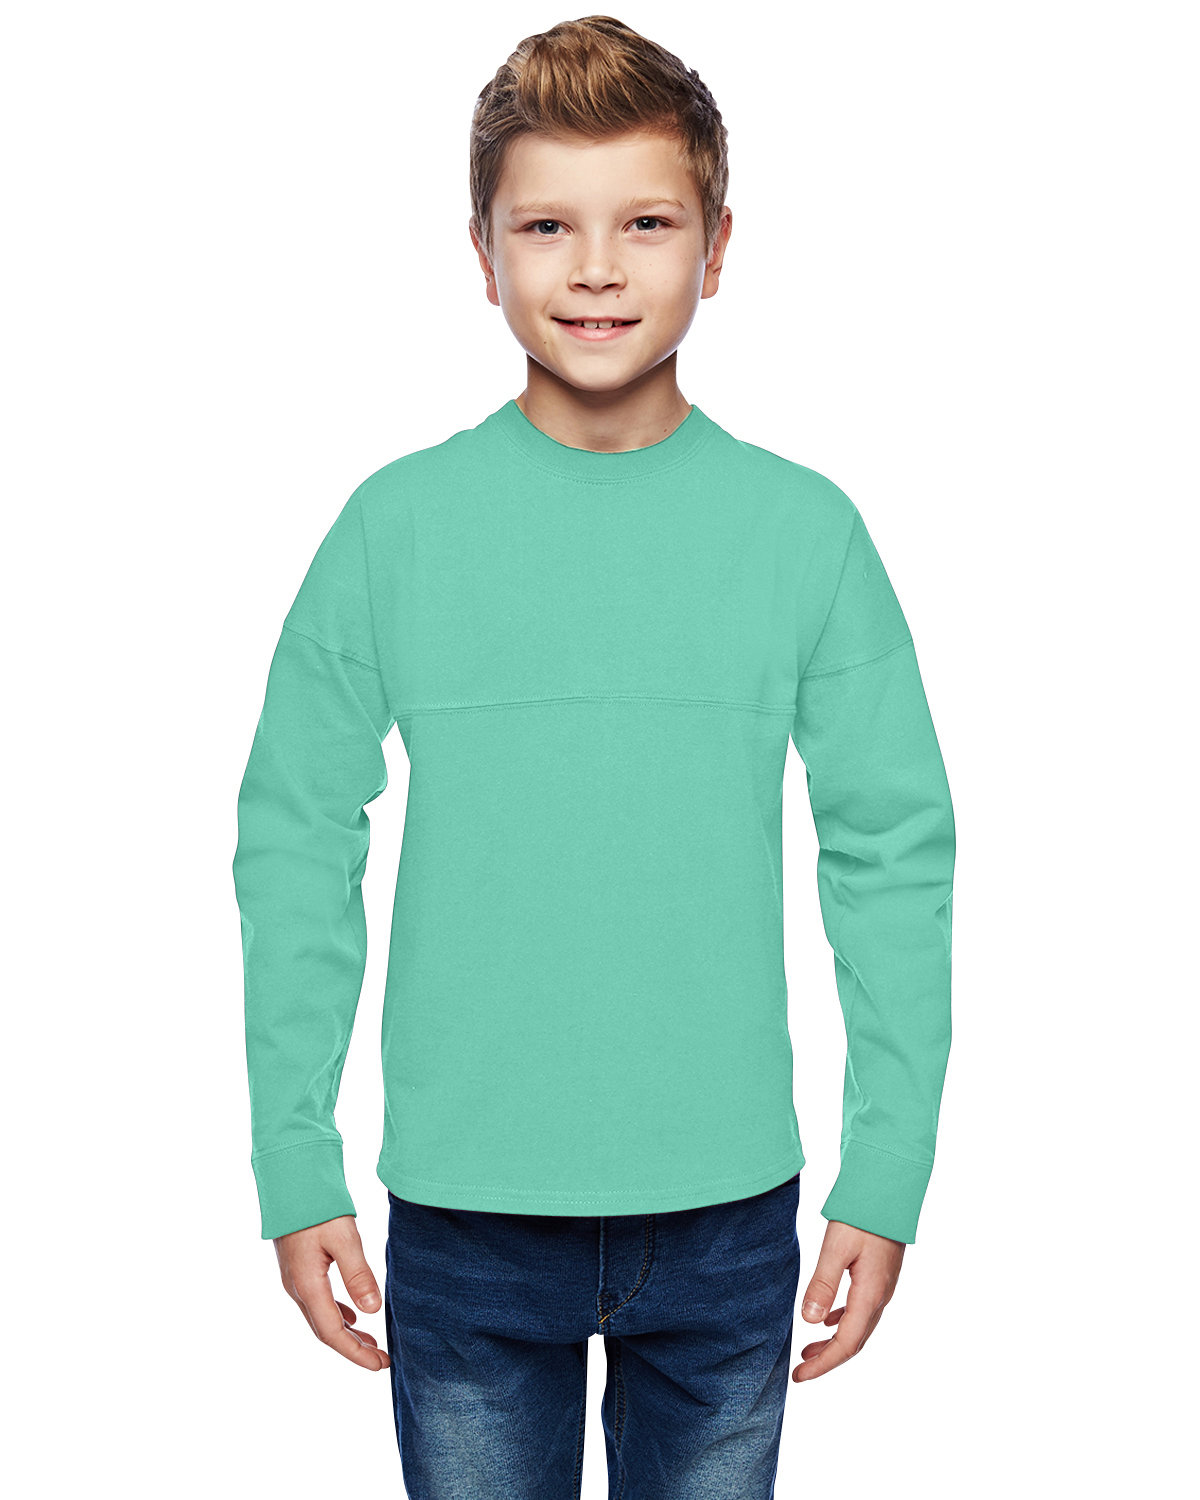 J America Youth Game Day Jersey MINT